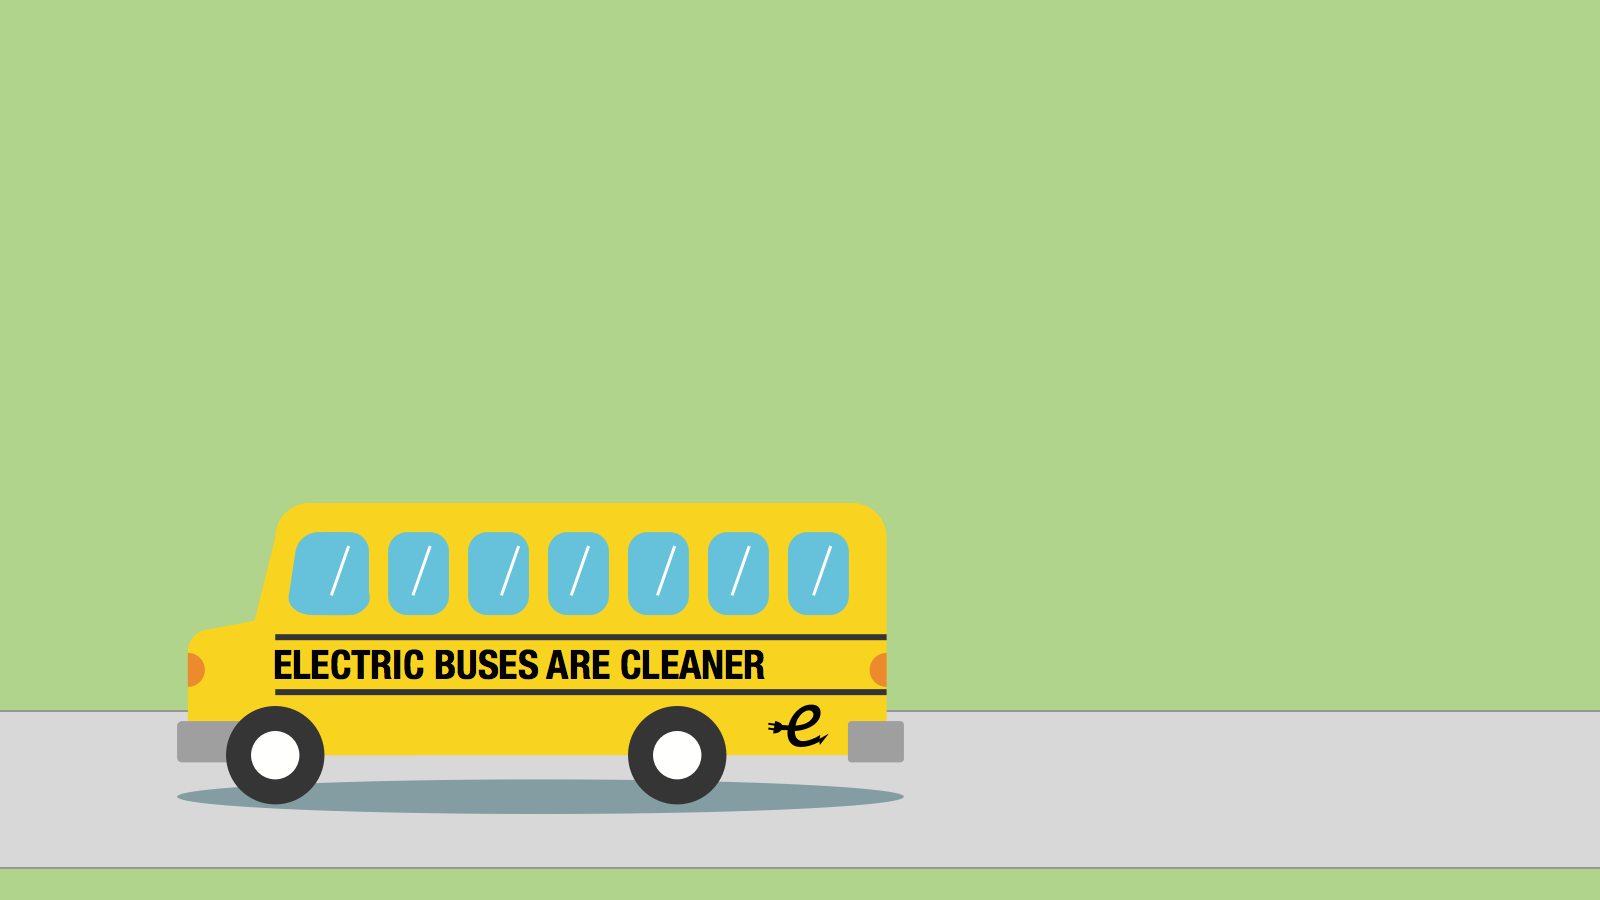 <h3>BENEFITS OF ELECTRIC BUSES</h3><p>Electric buses don't emit any tailpipe pollution, eliminating exhaust that is linked to asthma attacks, respiratory illness and cancer. </p>